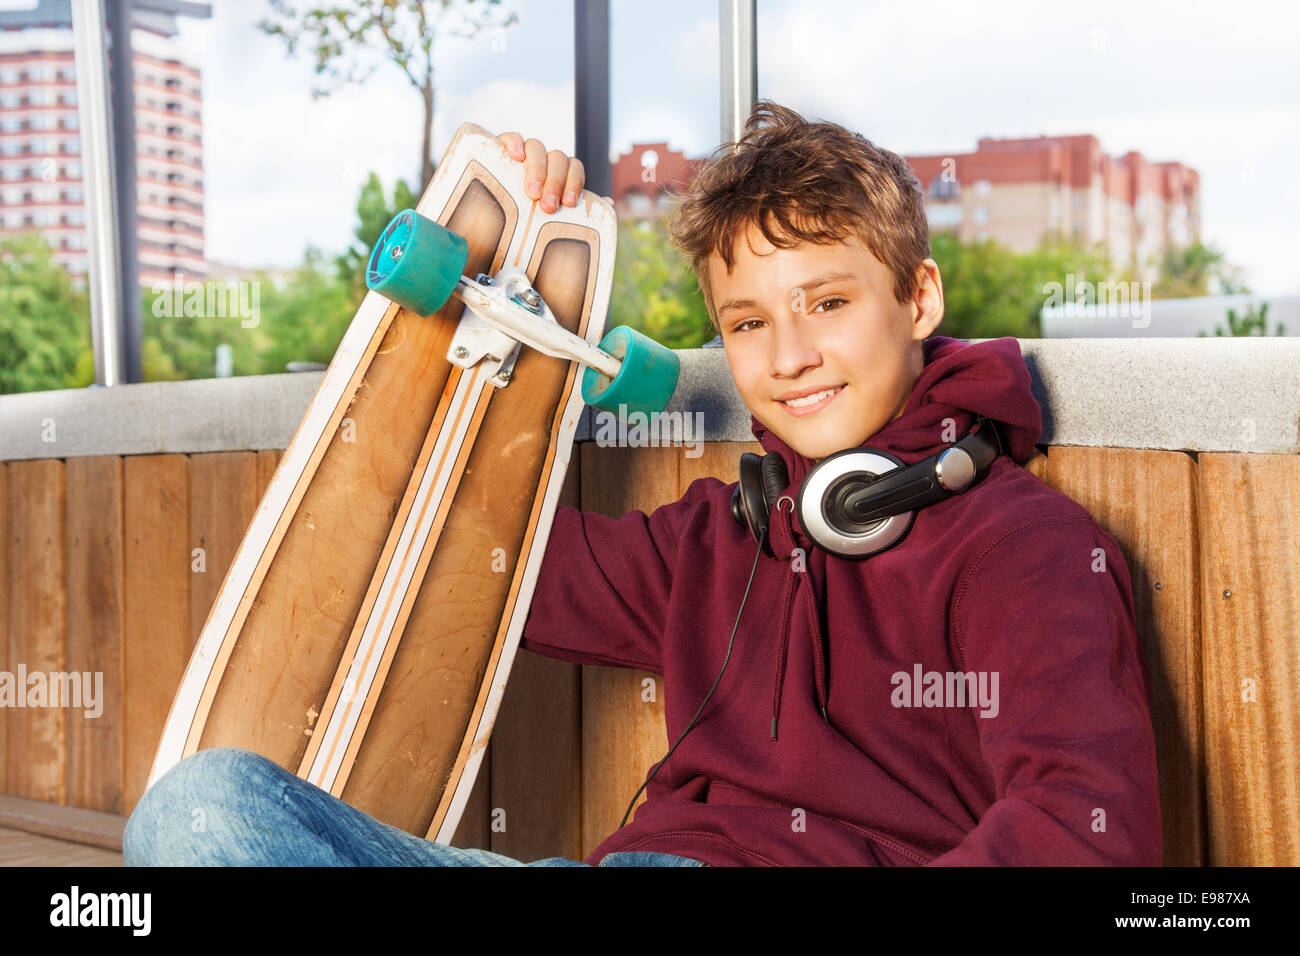 Positive cute boy holds skateboard while sitting - Stock Image